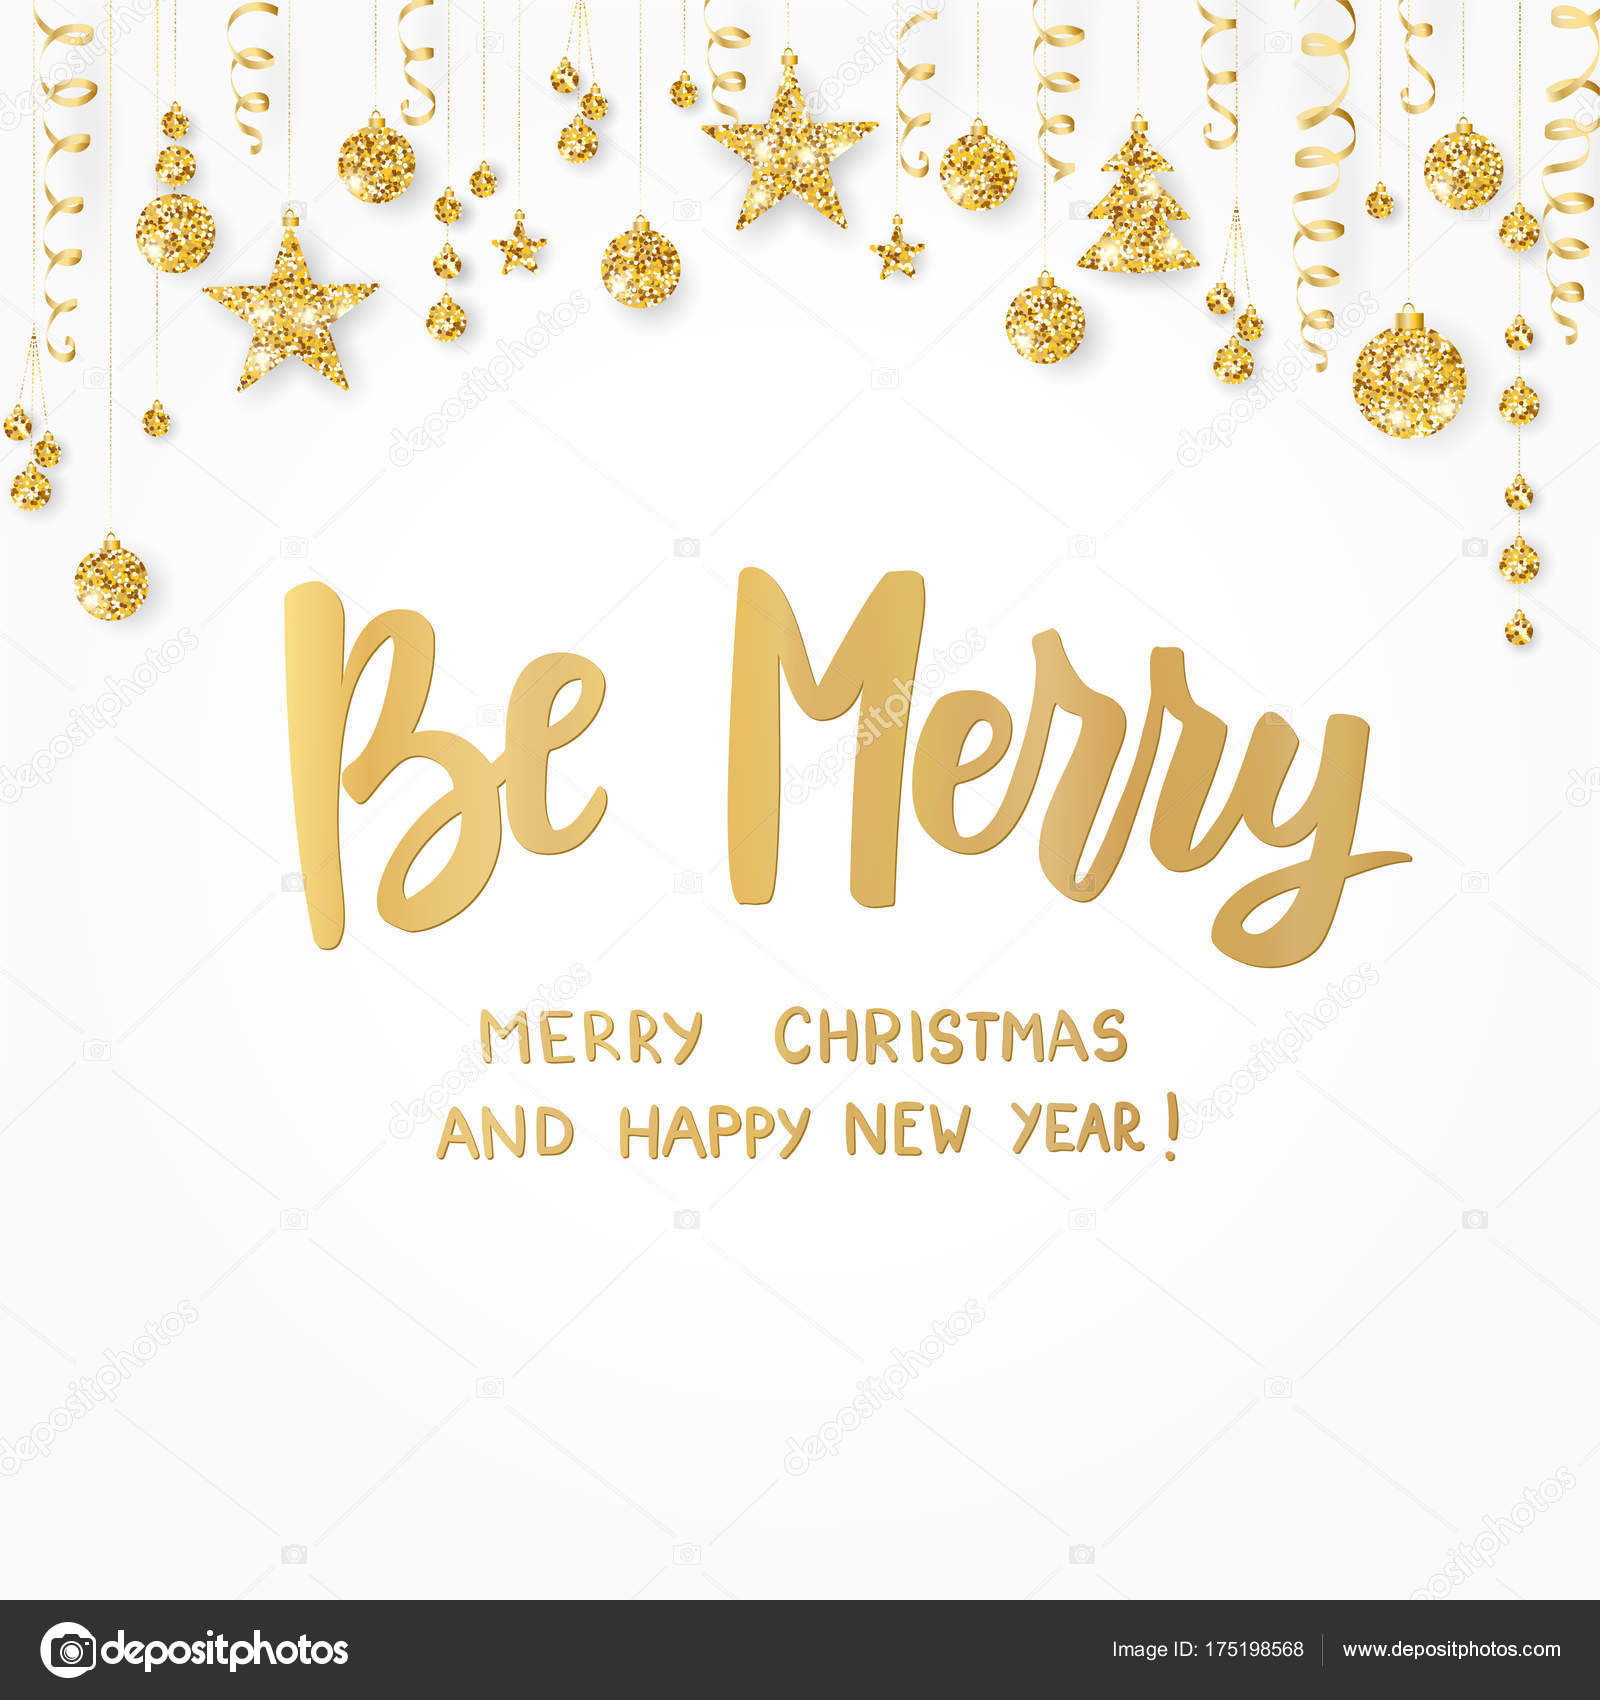 be merry happy new year and merry christmas text golden glitter border hanging